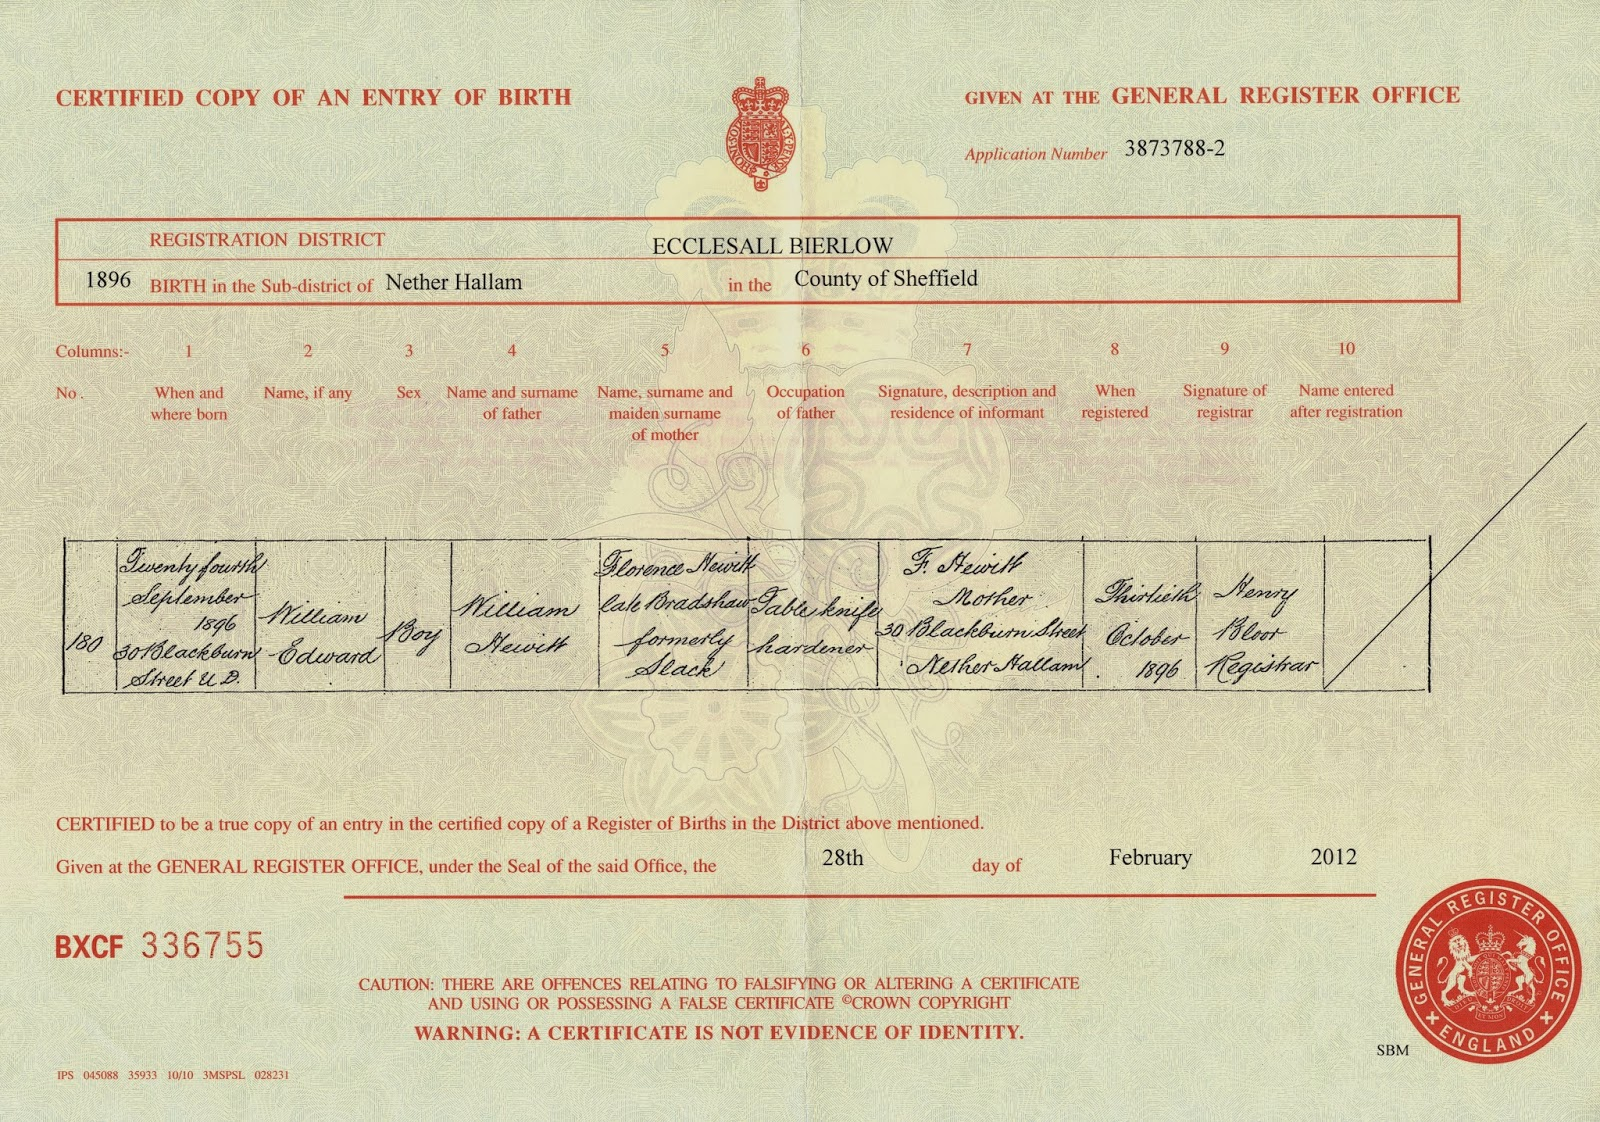 My link to the past william edward hewitt born 1896 william edward hewitts birth registration 24 sep 1896 nether hallam sheffield england aiddatafo Image collections